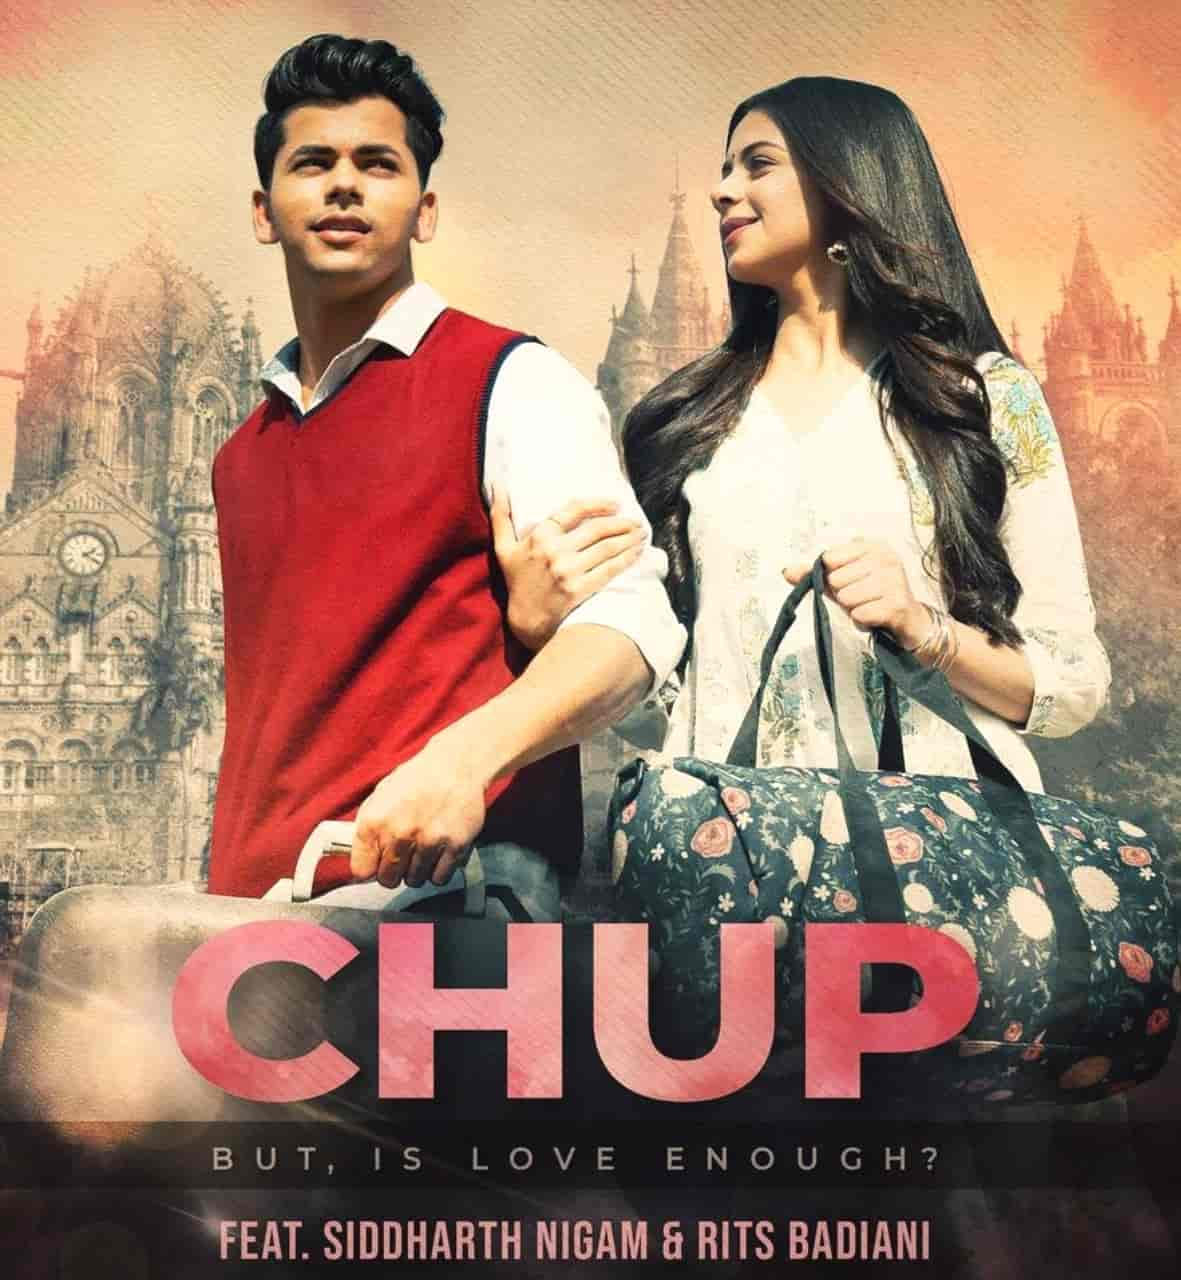 Chup Song Image Features Siddharth Nigam And Rits Badiani